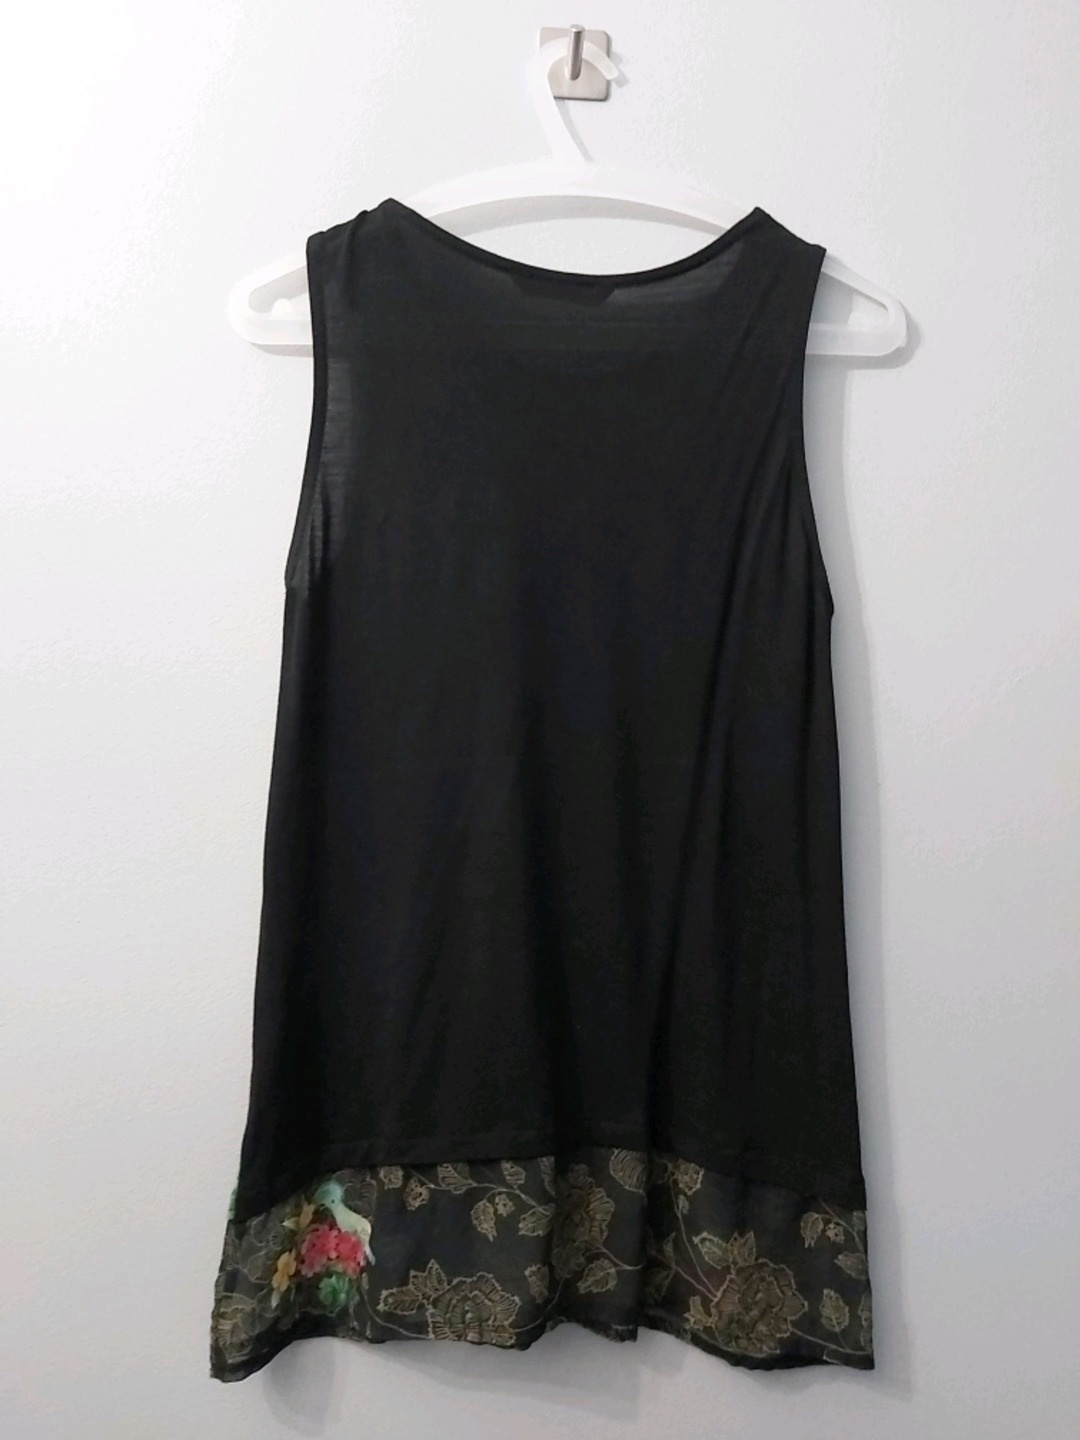 Women's tops & t-shirts - DESIGUAL photo 2